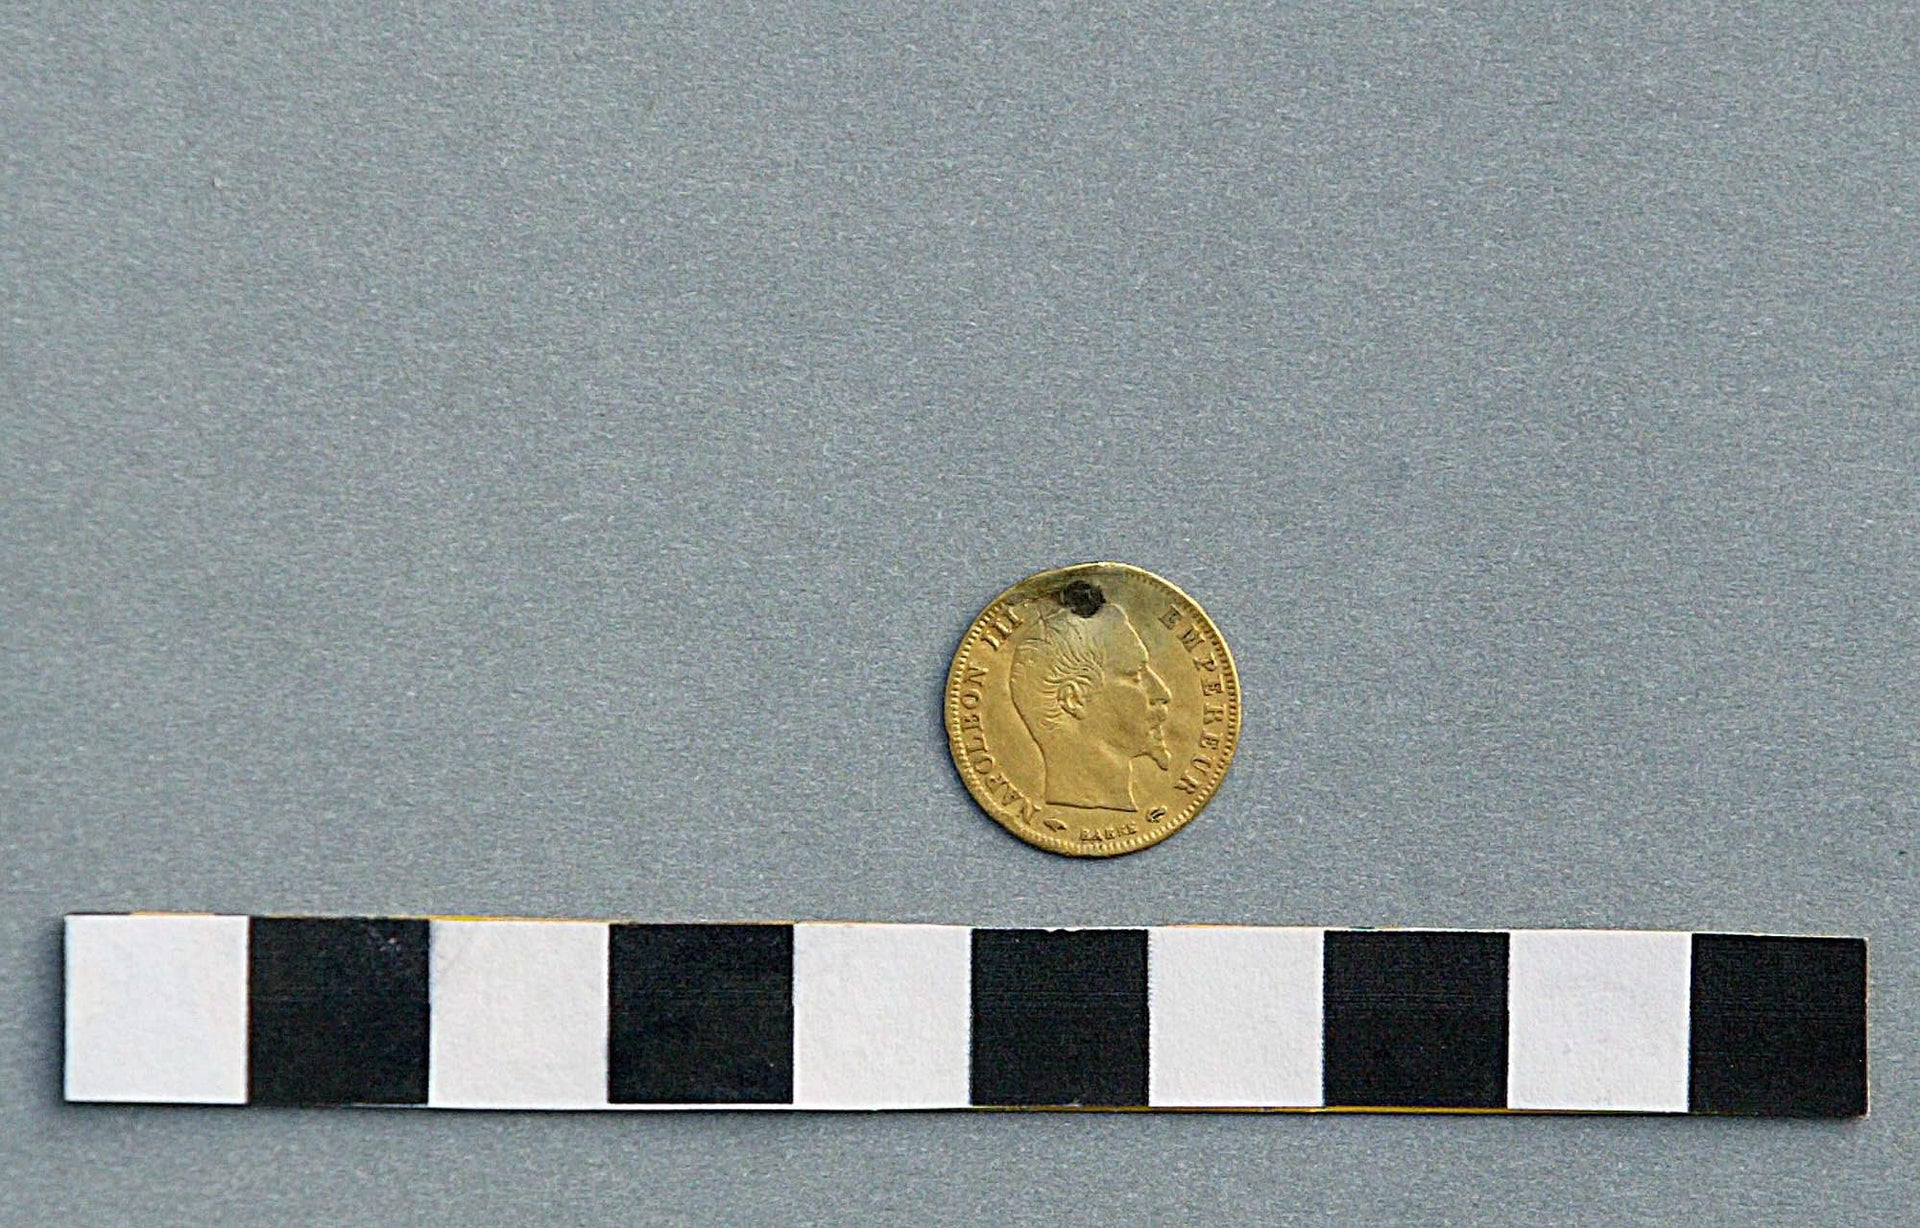 A Napoleon coin, minted in 1858, found in debris taken from Temple Mount, Jerusalem